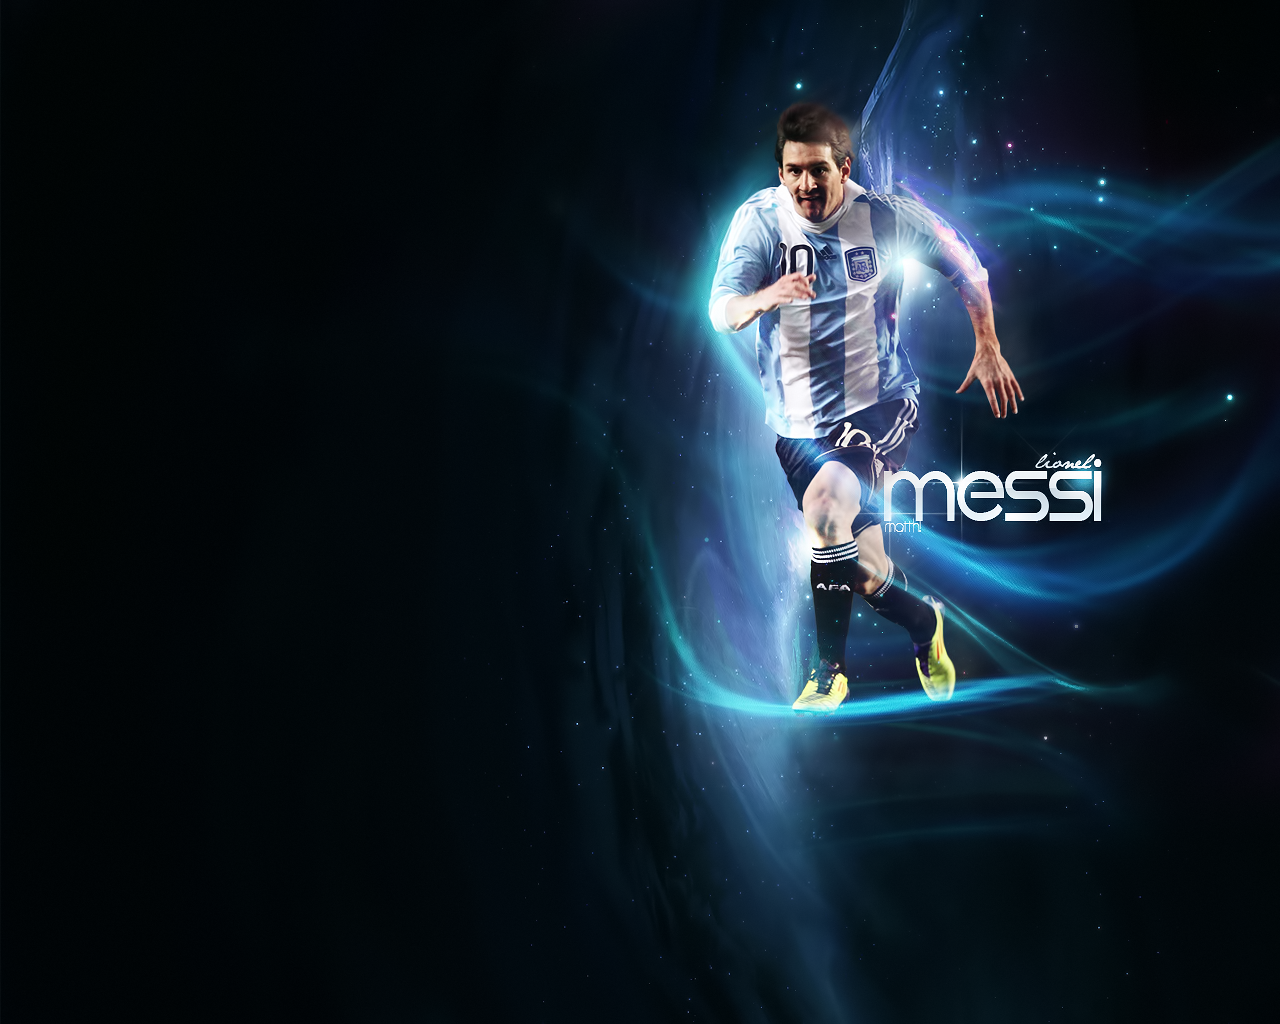 Lionel Messi HD Wallpapers 1080p   Football Wallpaper HD Football 1280x1024